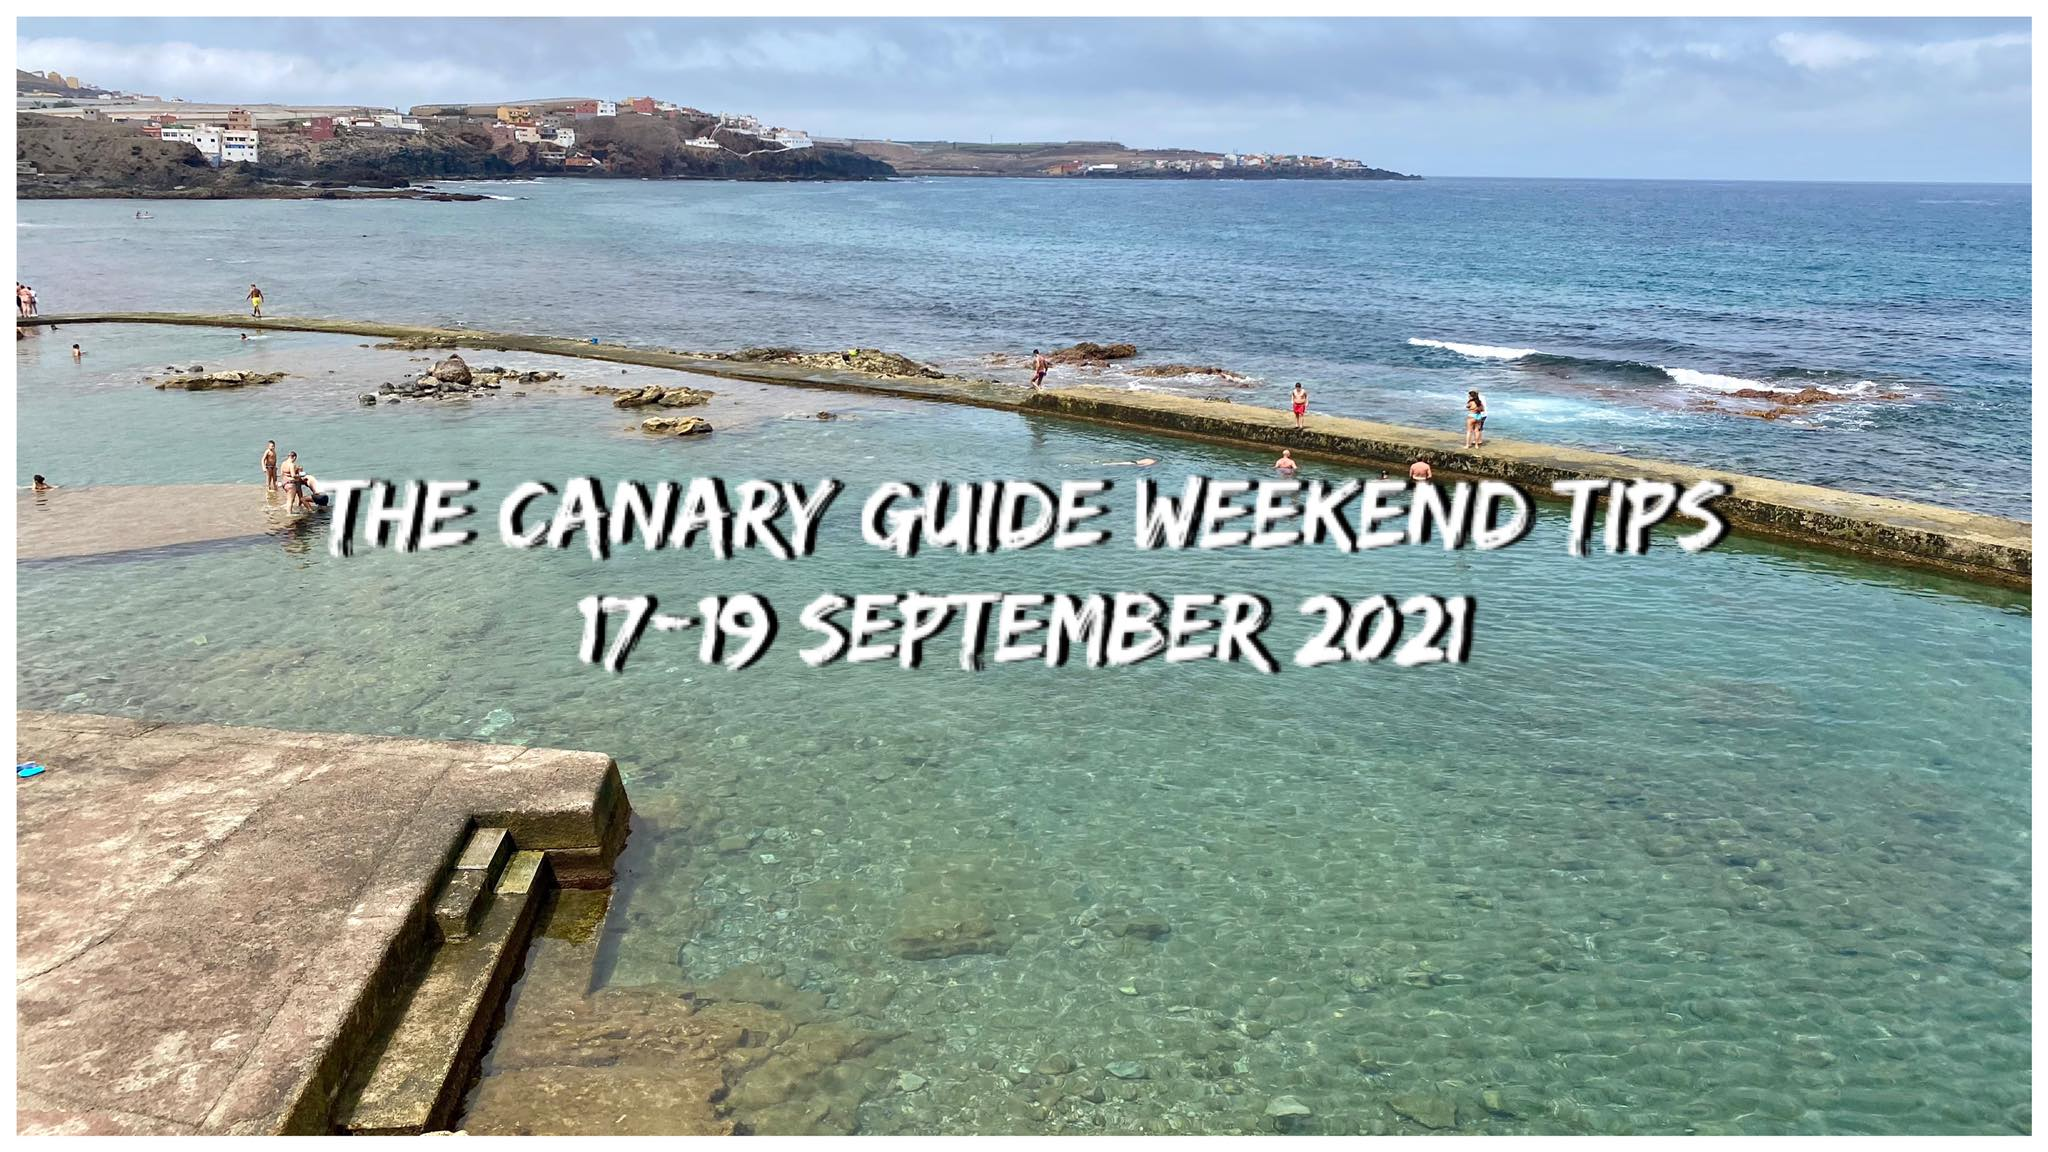 The Canary Guide Weekend Tips 17-19 September 2021